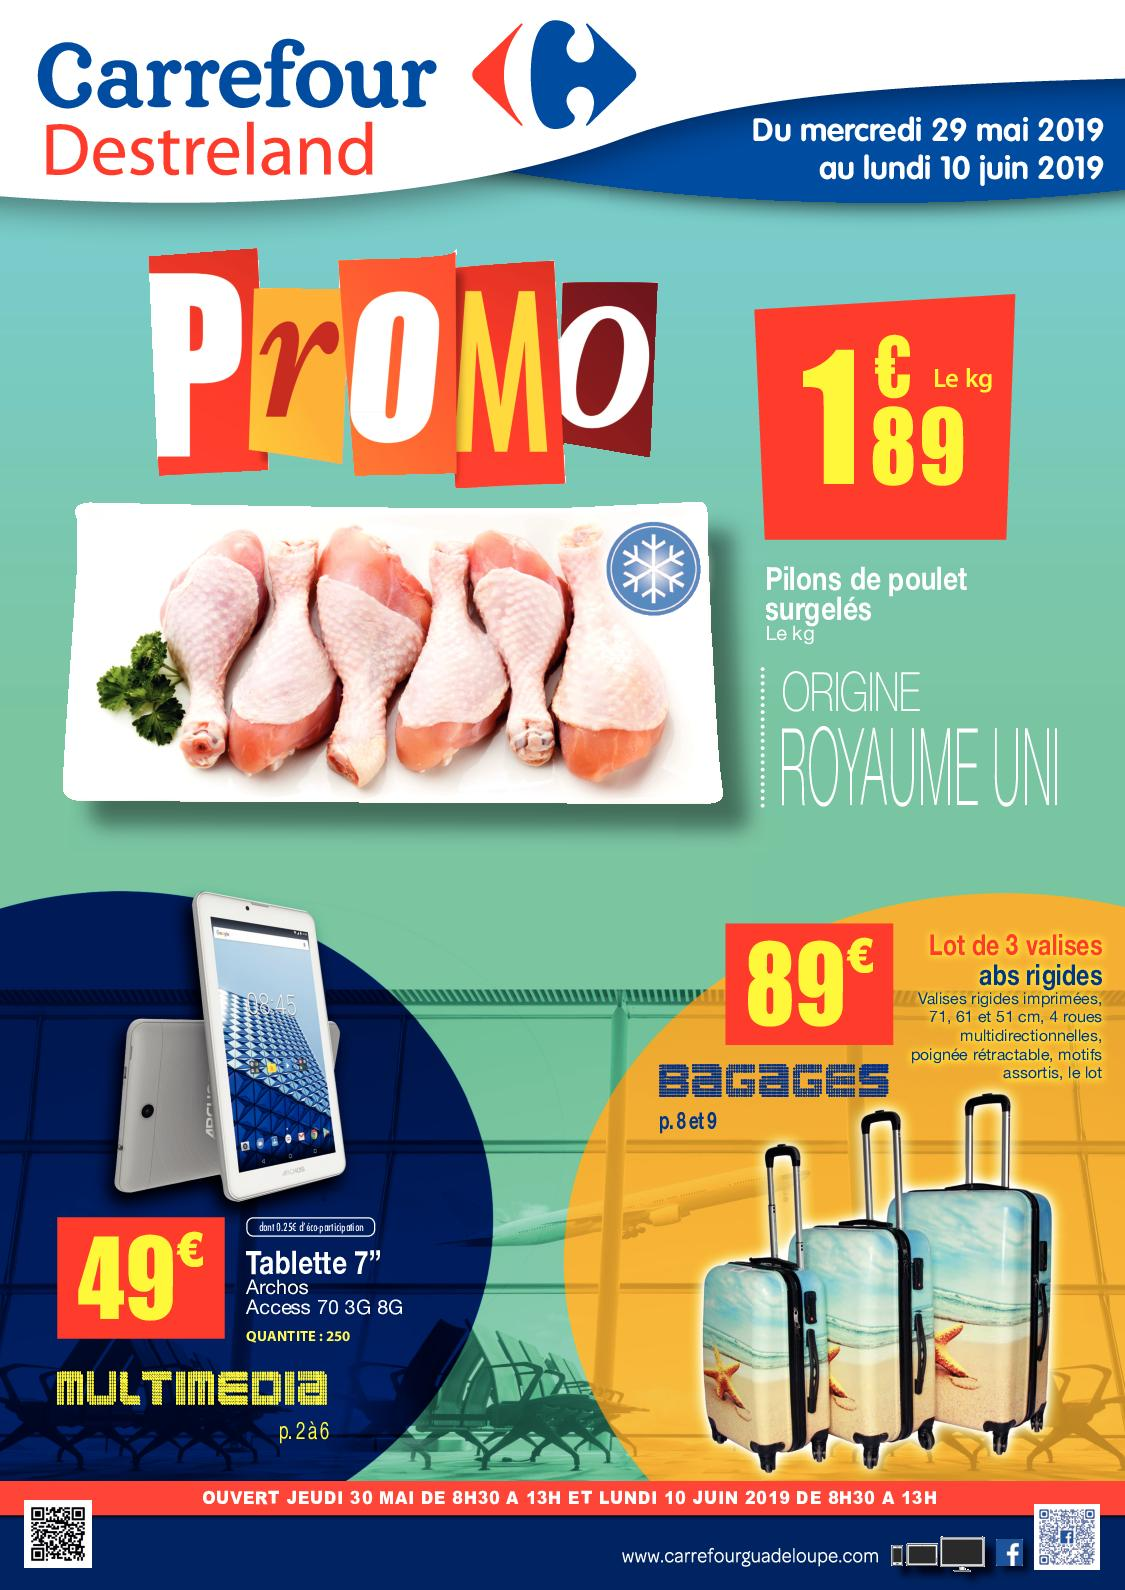 Carrefour Destreland - Bagages Promo - 2019